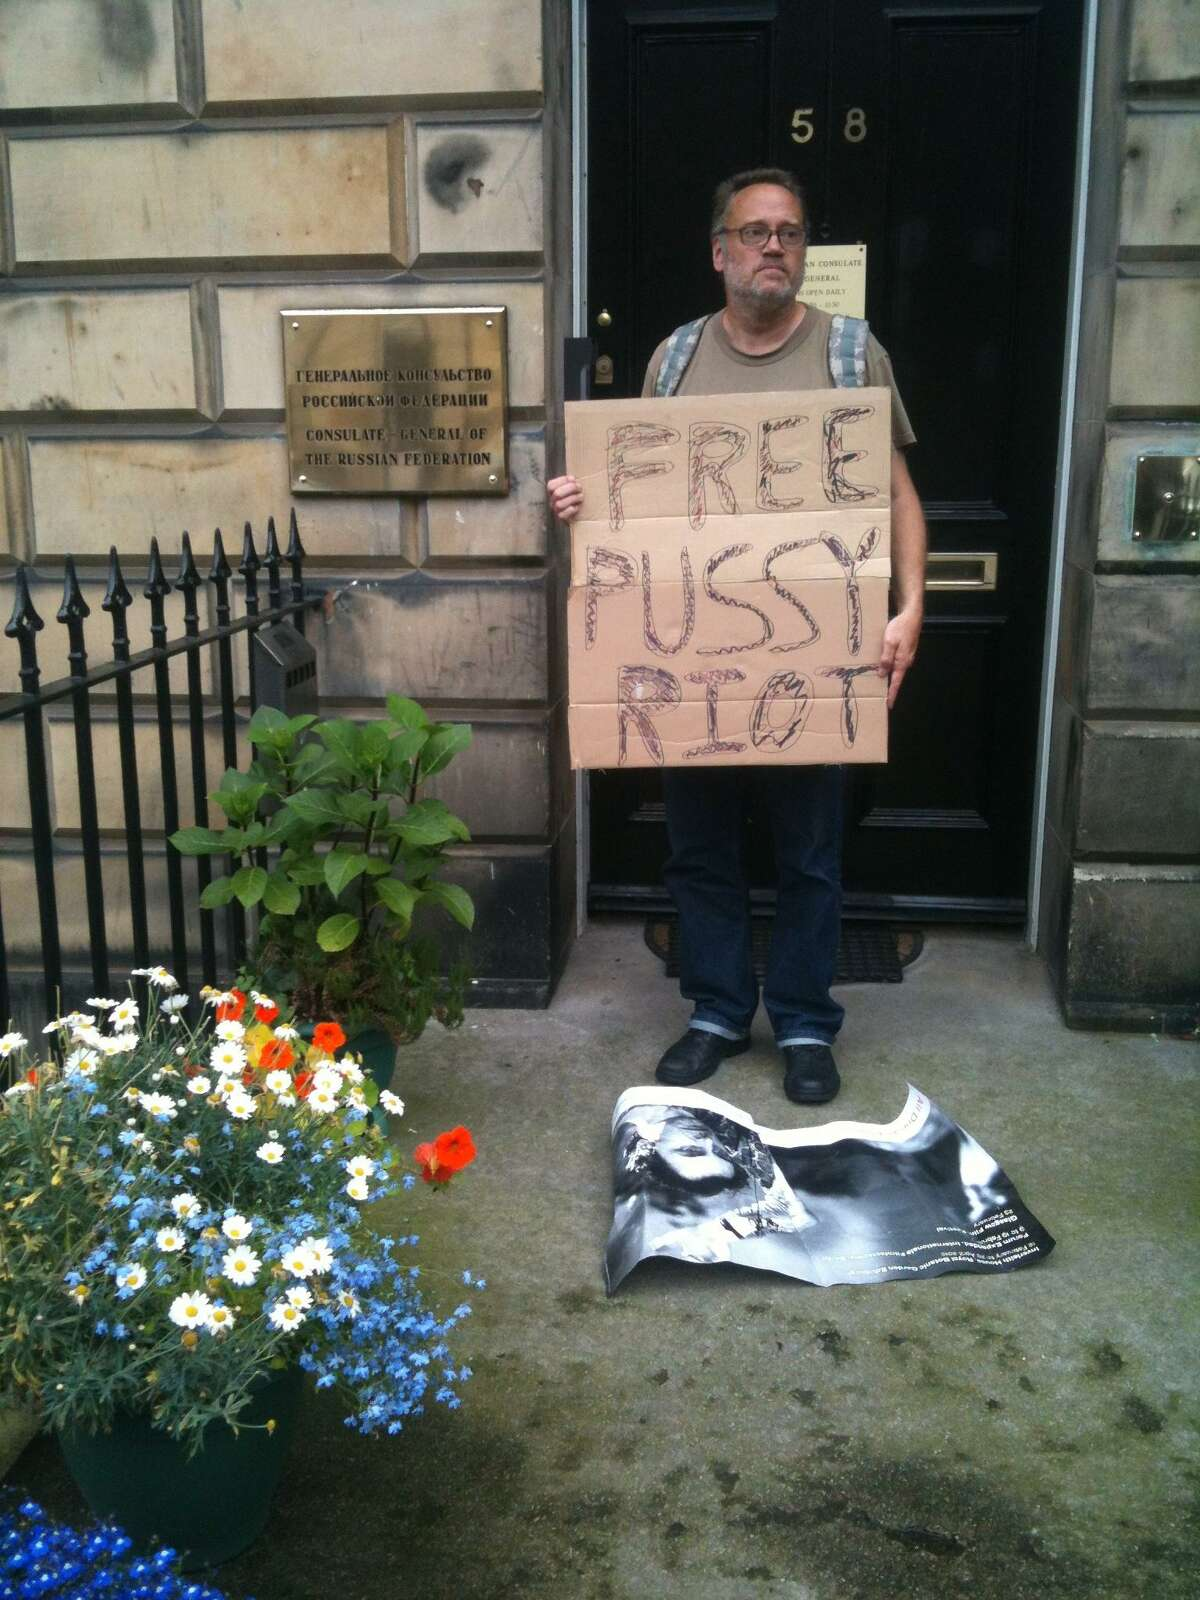 Ray Neal, a member of Occupy New Haven, stands in front of the Russian Consulate in Edinburgh, Scotland, with a sign protesting the arrest and conviction of some members of the Russian punk band, Pussy Riot. Contributed photo